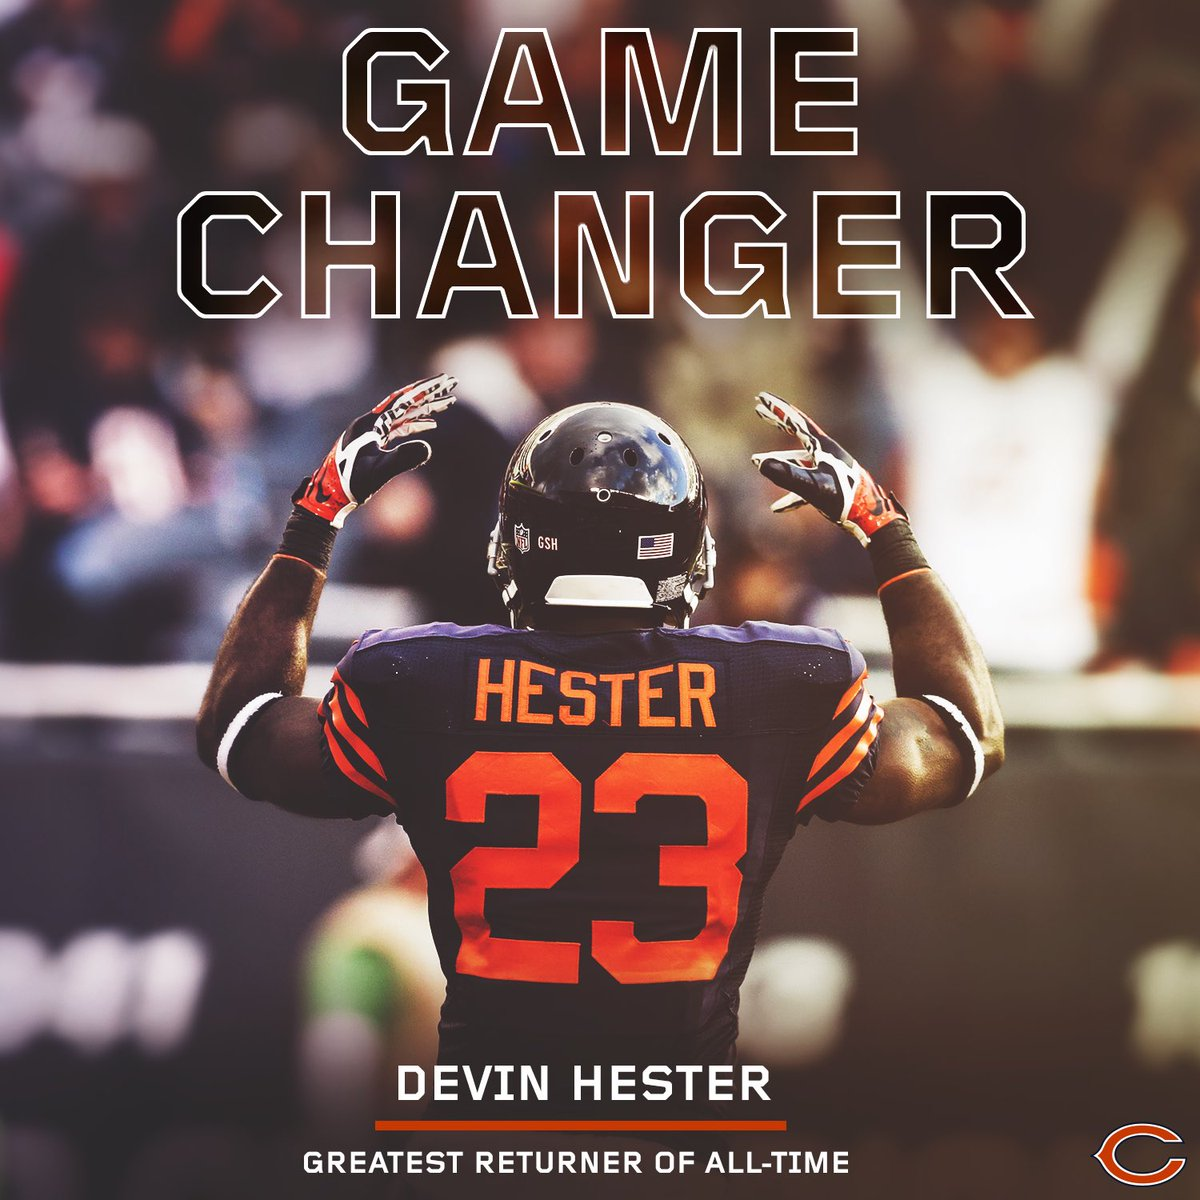 And the game was forever changed.   Congrats on one ridiculous career, @D_Hest23. https://t.co/JlVyiJuUWb